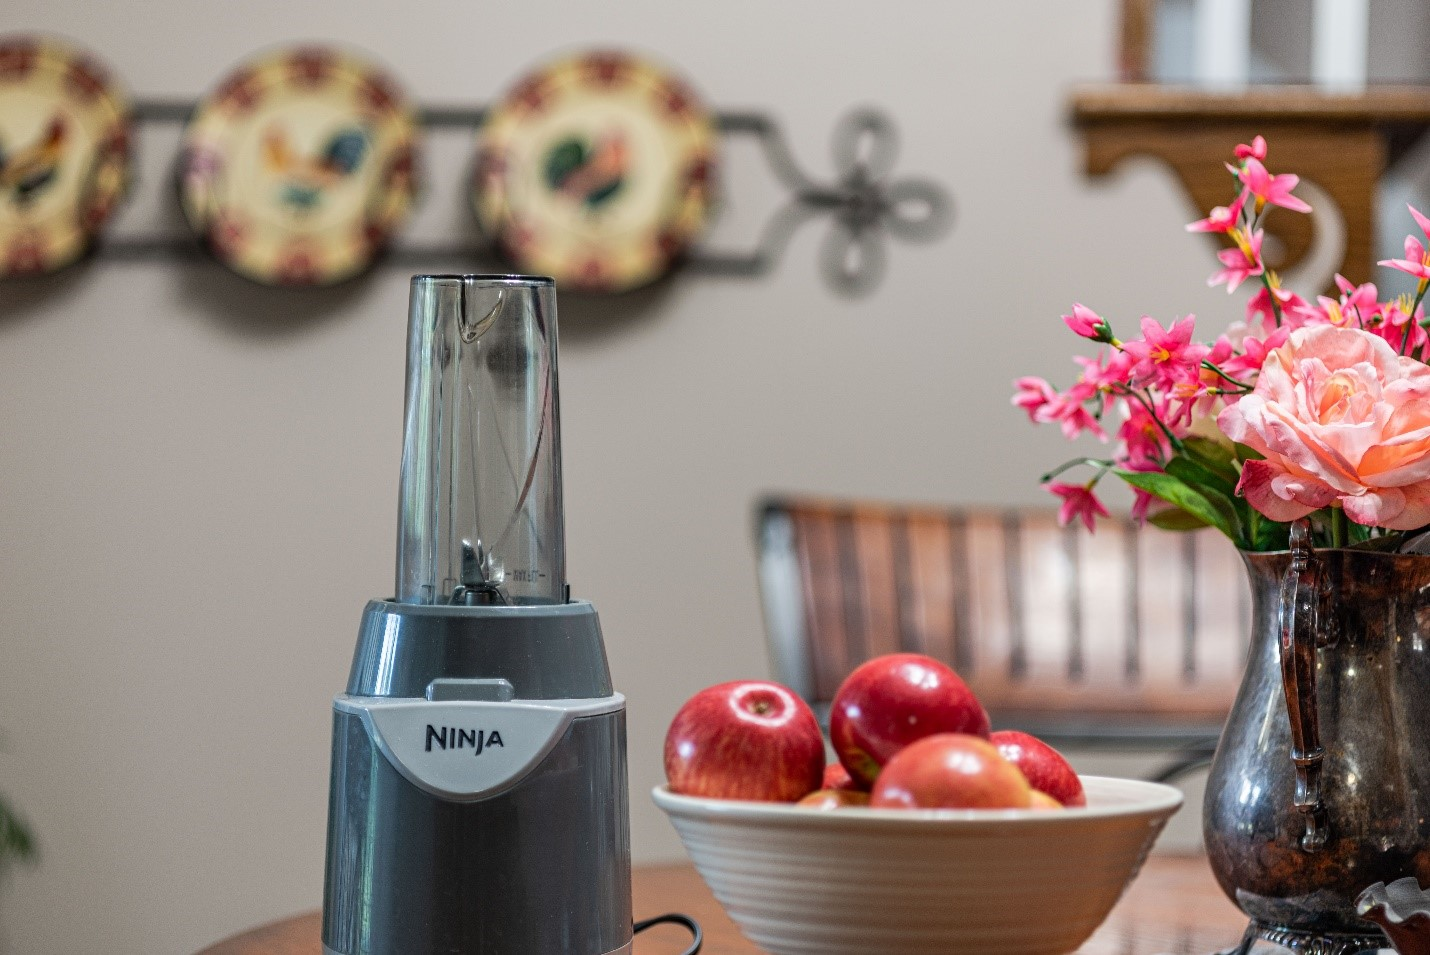 a Ninja blender with an apple on the side